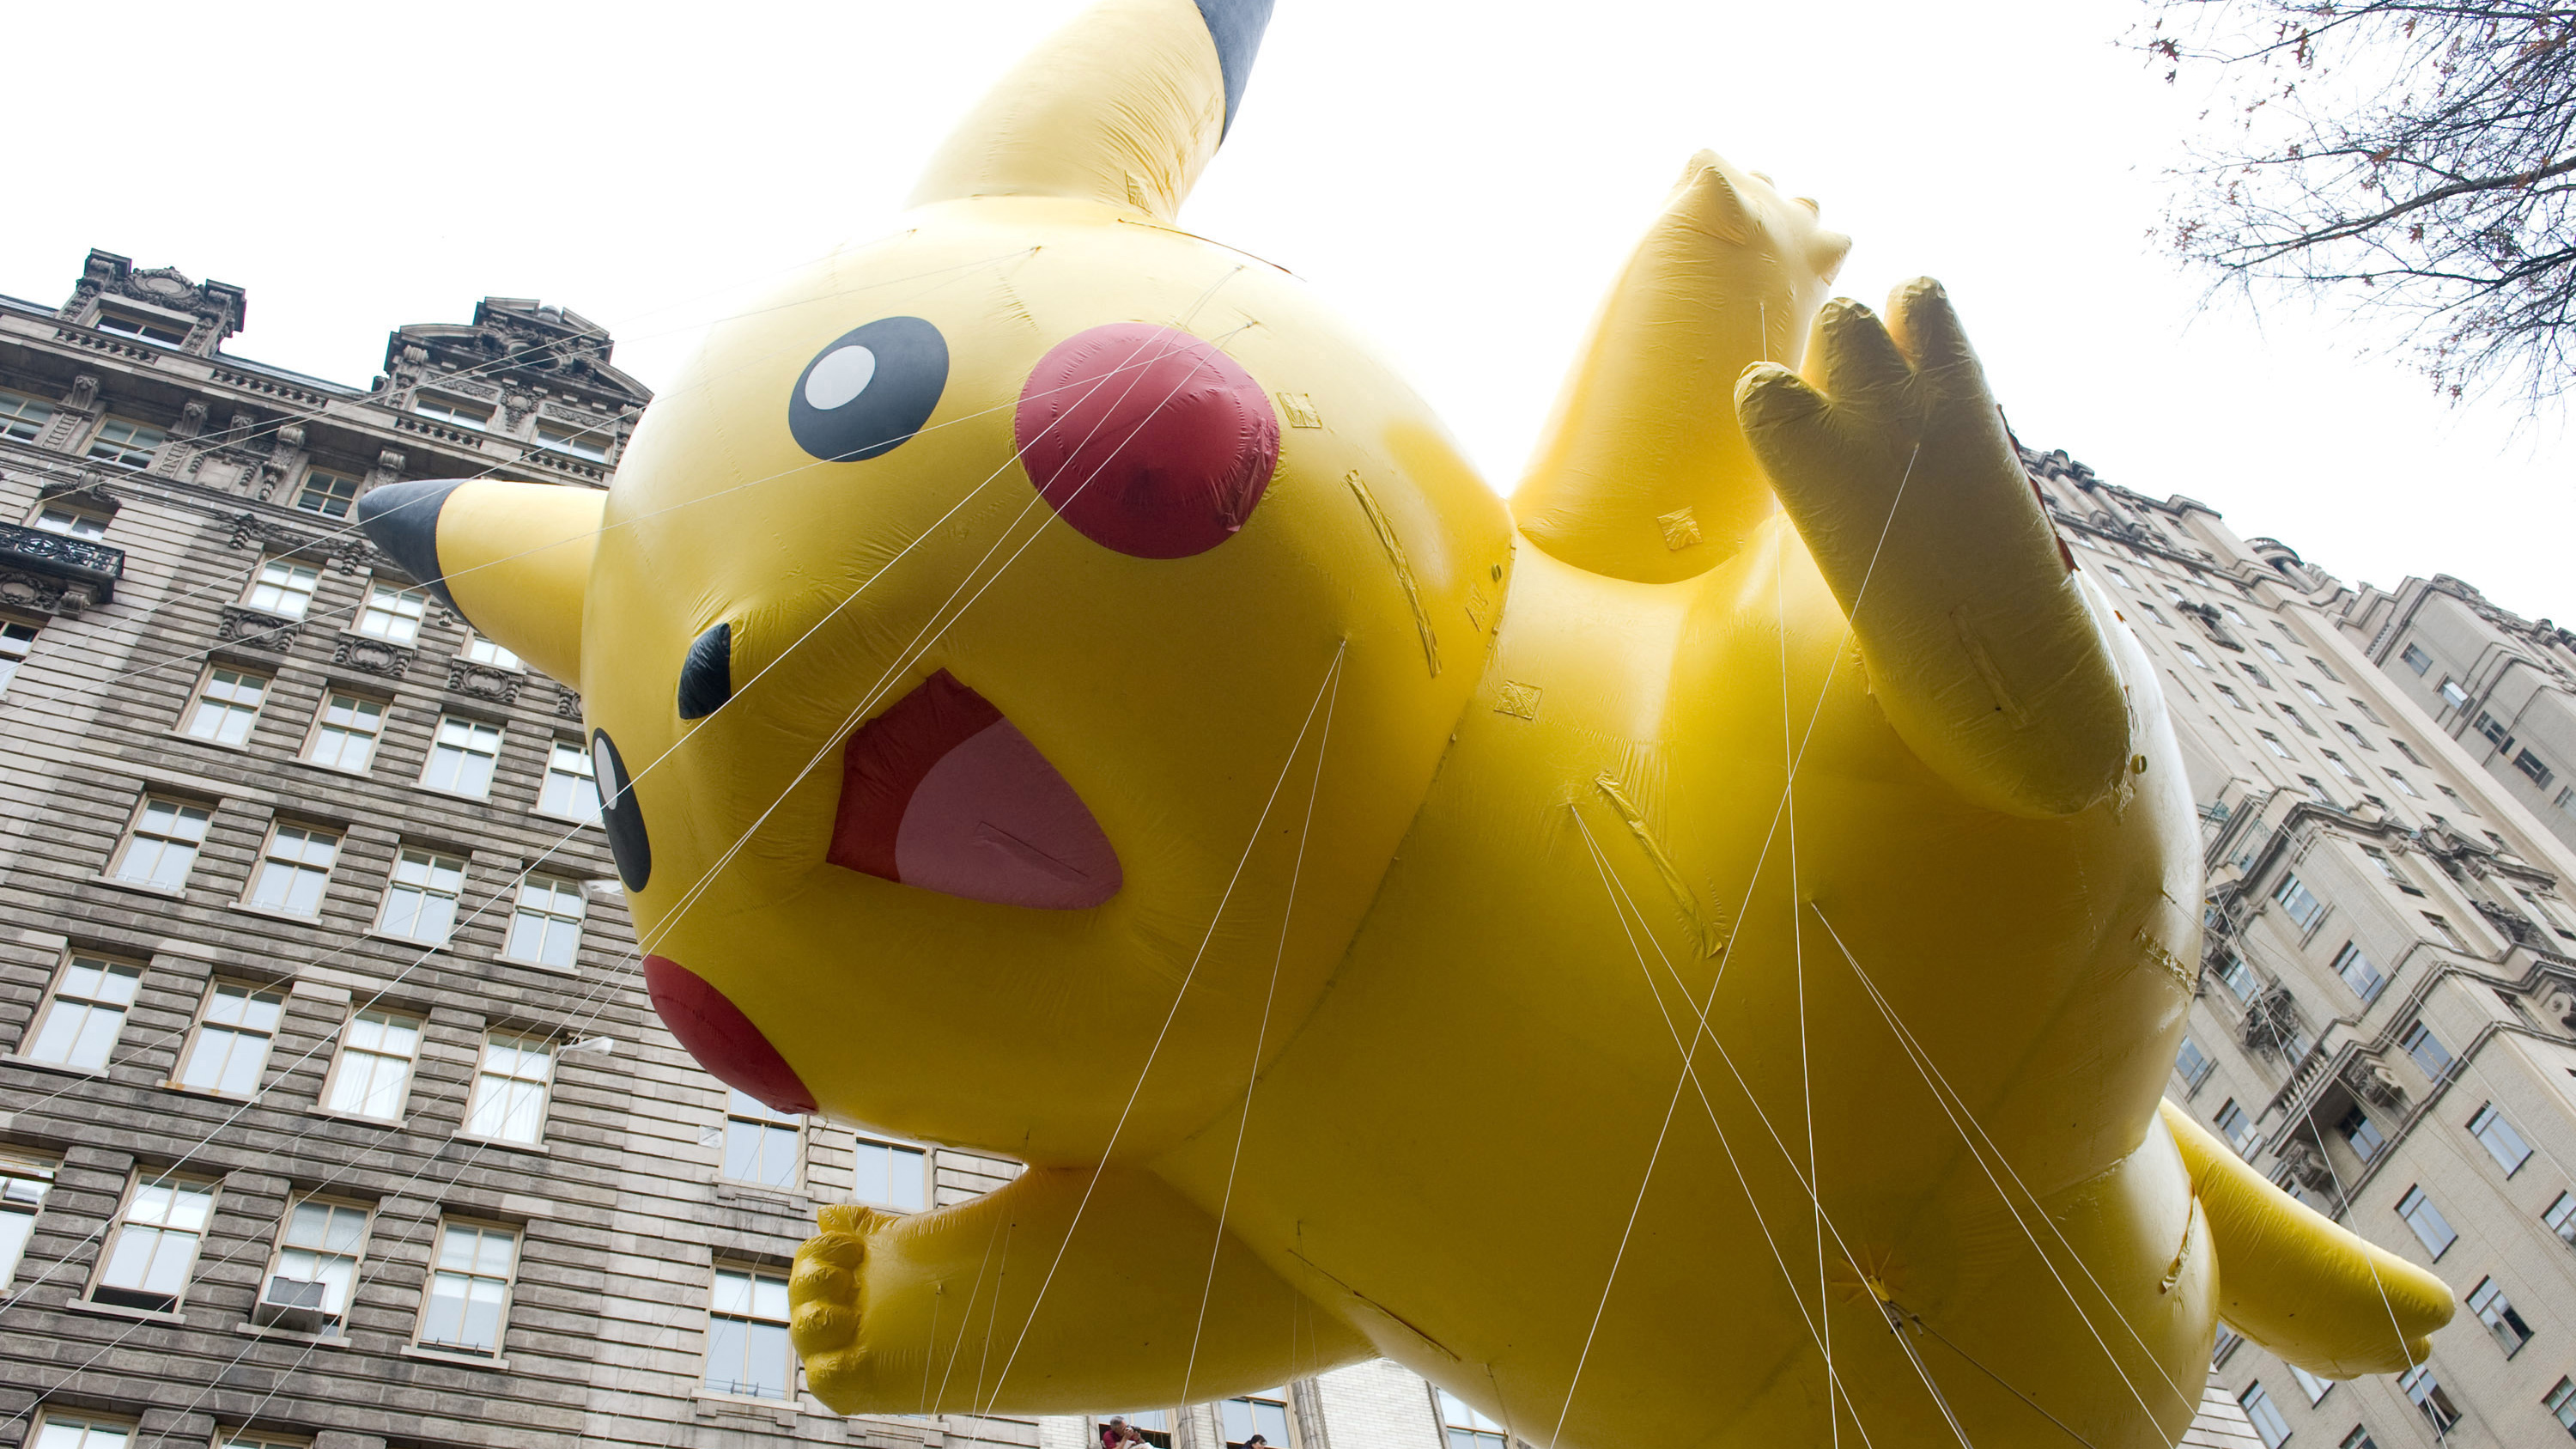 The Pikachu Pokemon balloon floats down Central Park West during the Macy's Thanksgiving Day Parade in New York, Thursday, Nov. 26, 2009. (AP Photo/Charles Sykes)